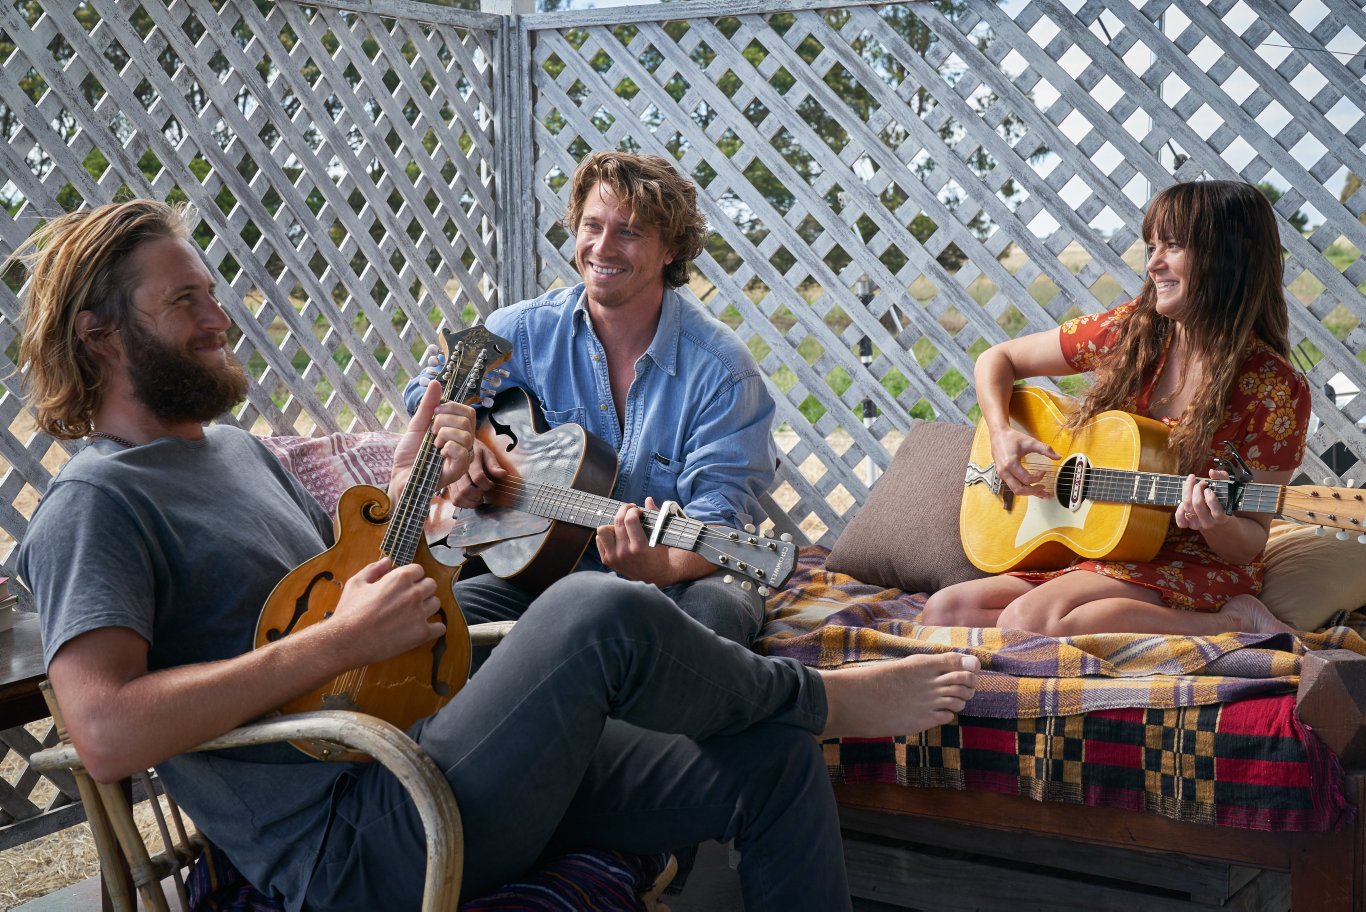 George Mason, Garrett Hedlund and Julia Stone in a scene from Dirt Music.